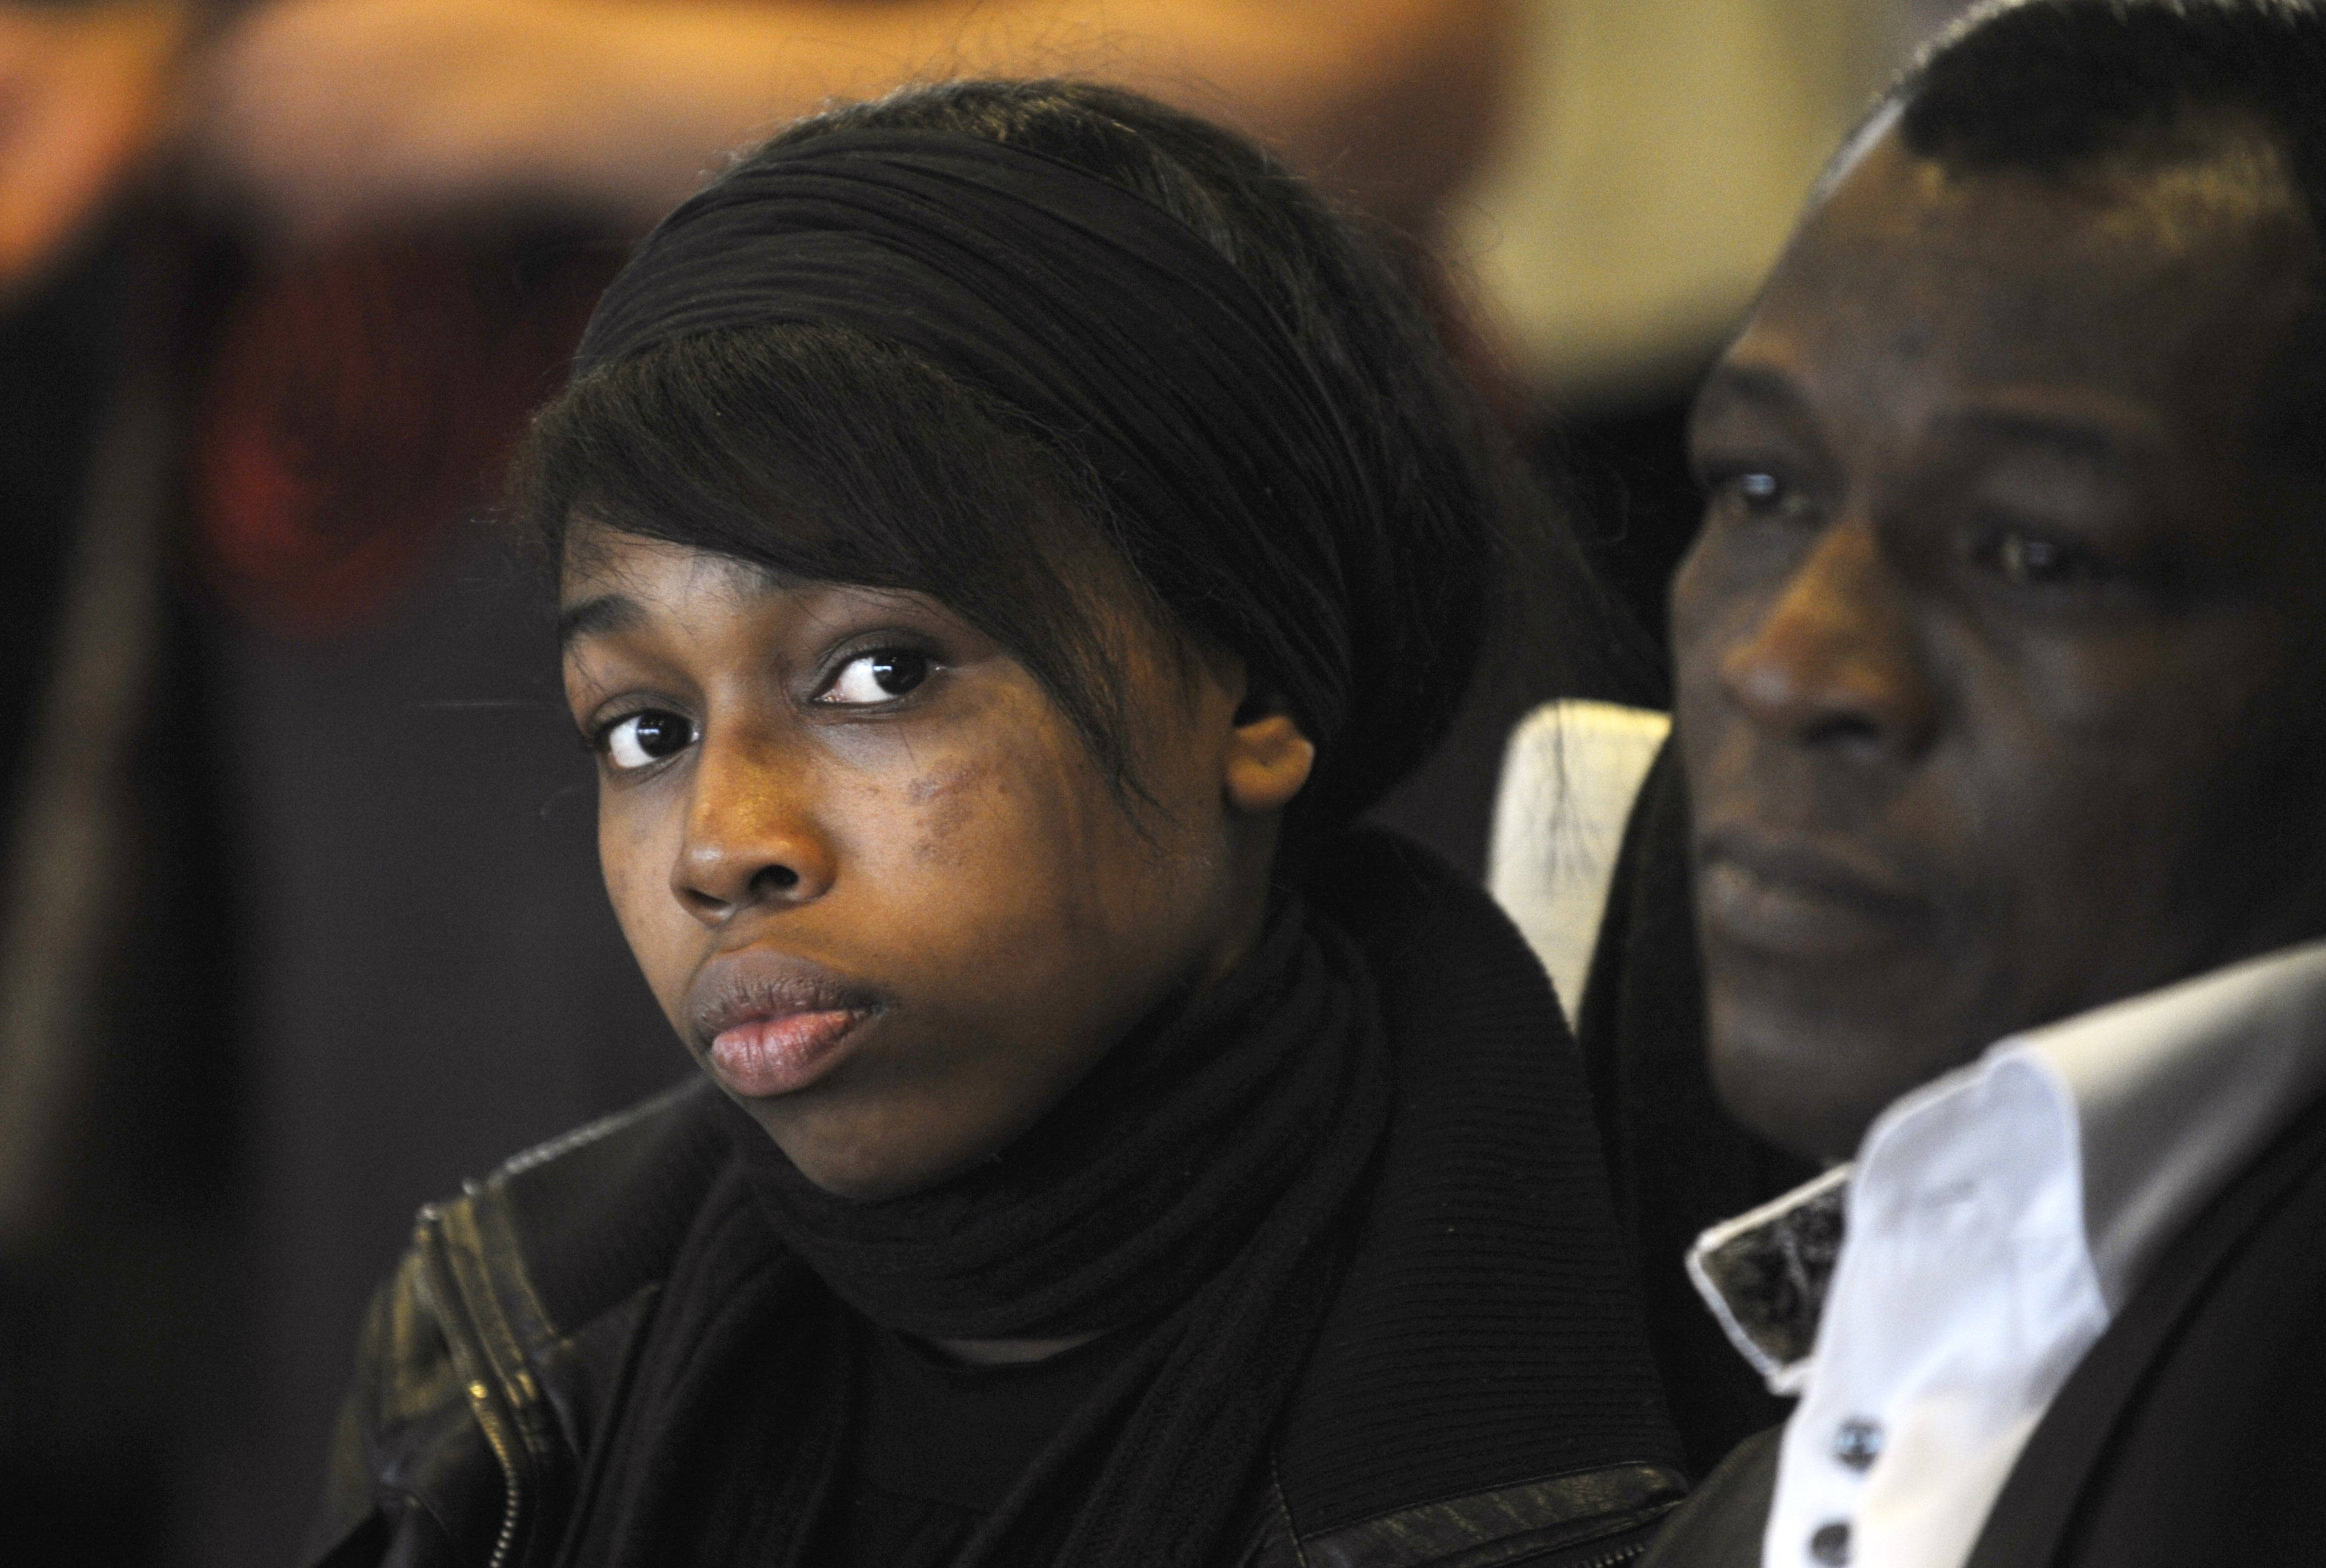 Bahia Bakari was only 12 when the flight she was on, Yemenia Flight 626, plummeted into the Indian Ocean on June 30, 2009.